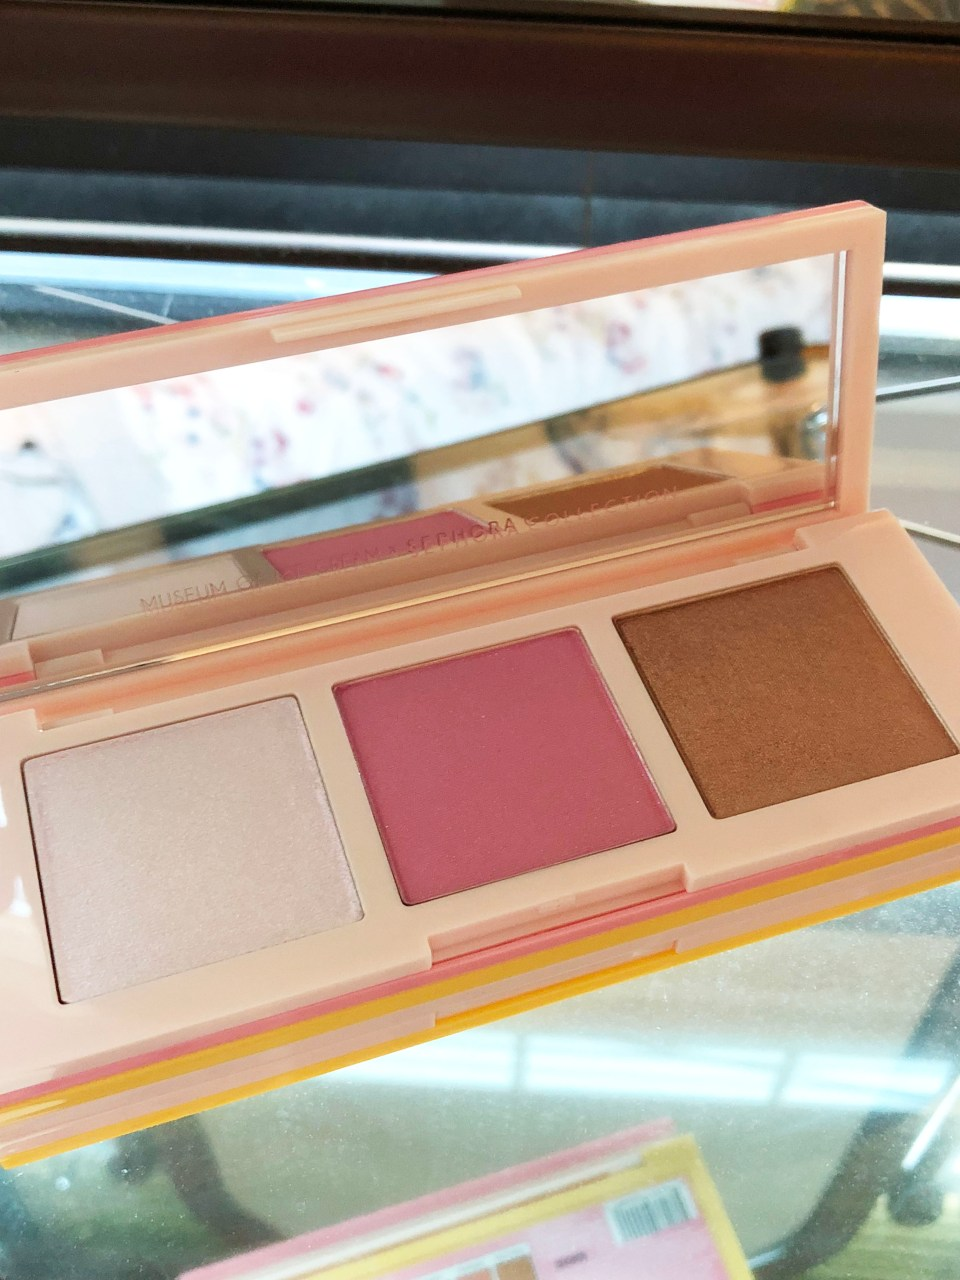 Museum of Ice Cream x Sephora - Sugar Wafer Palette 1